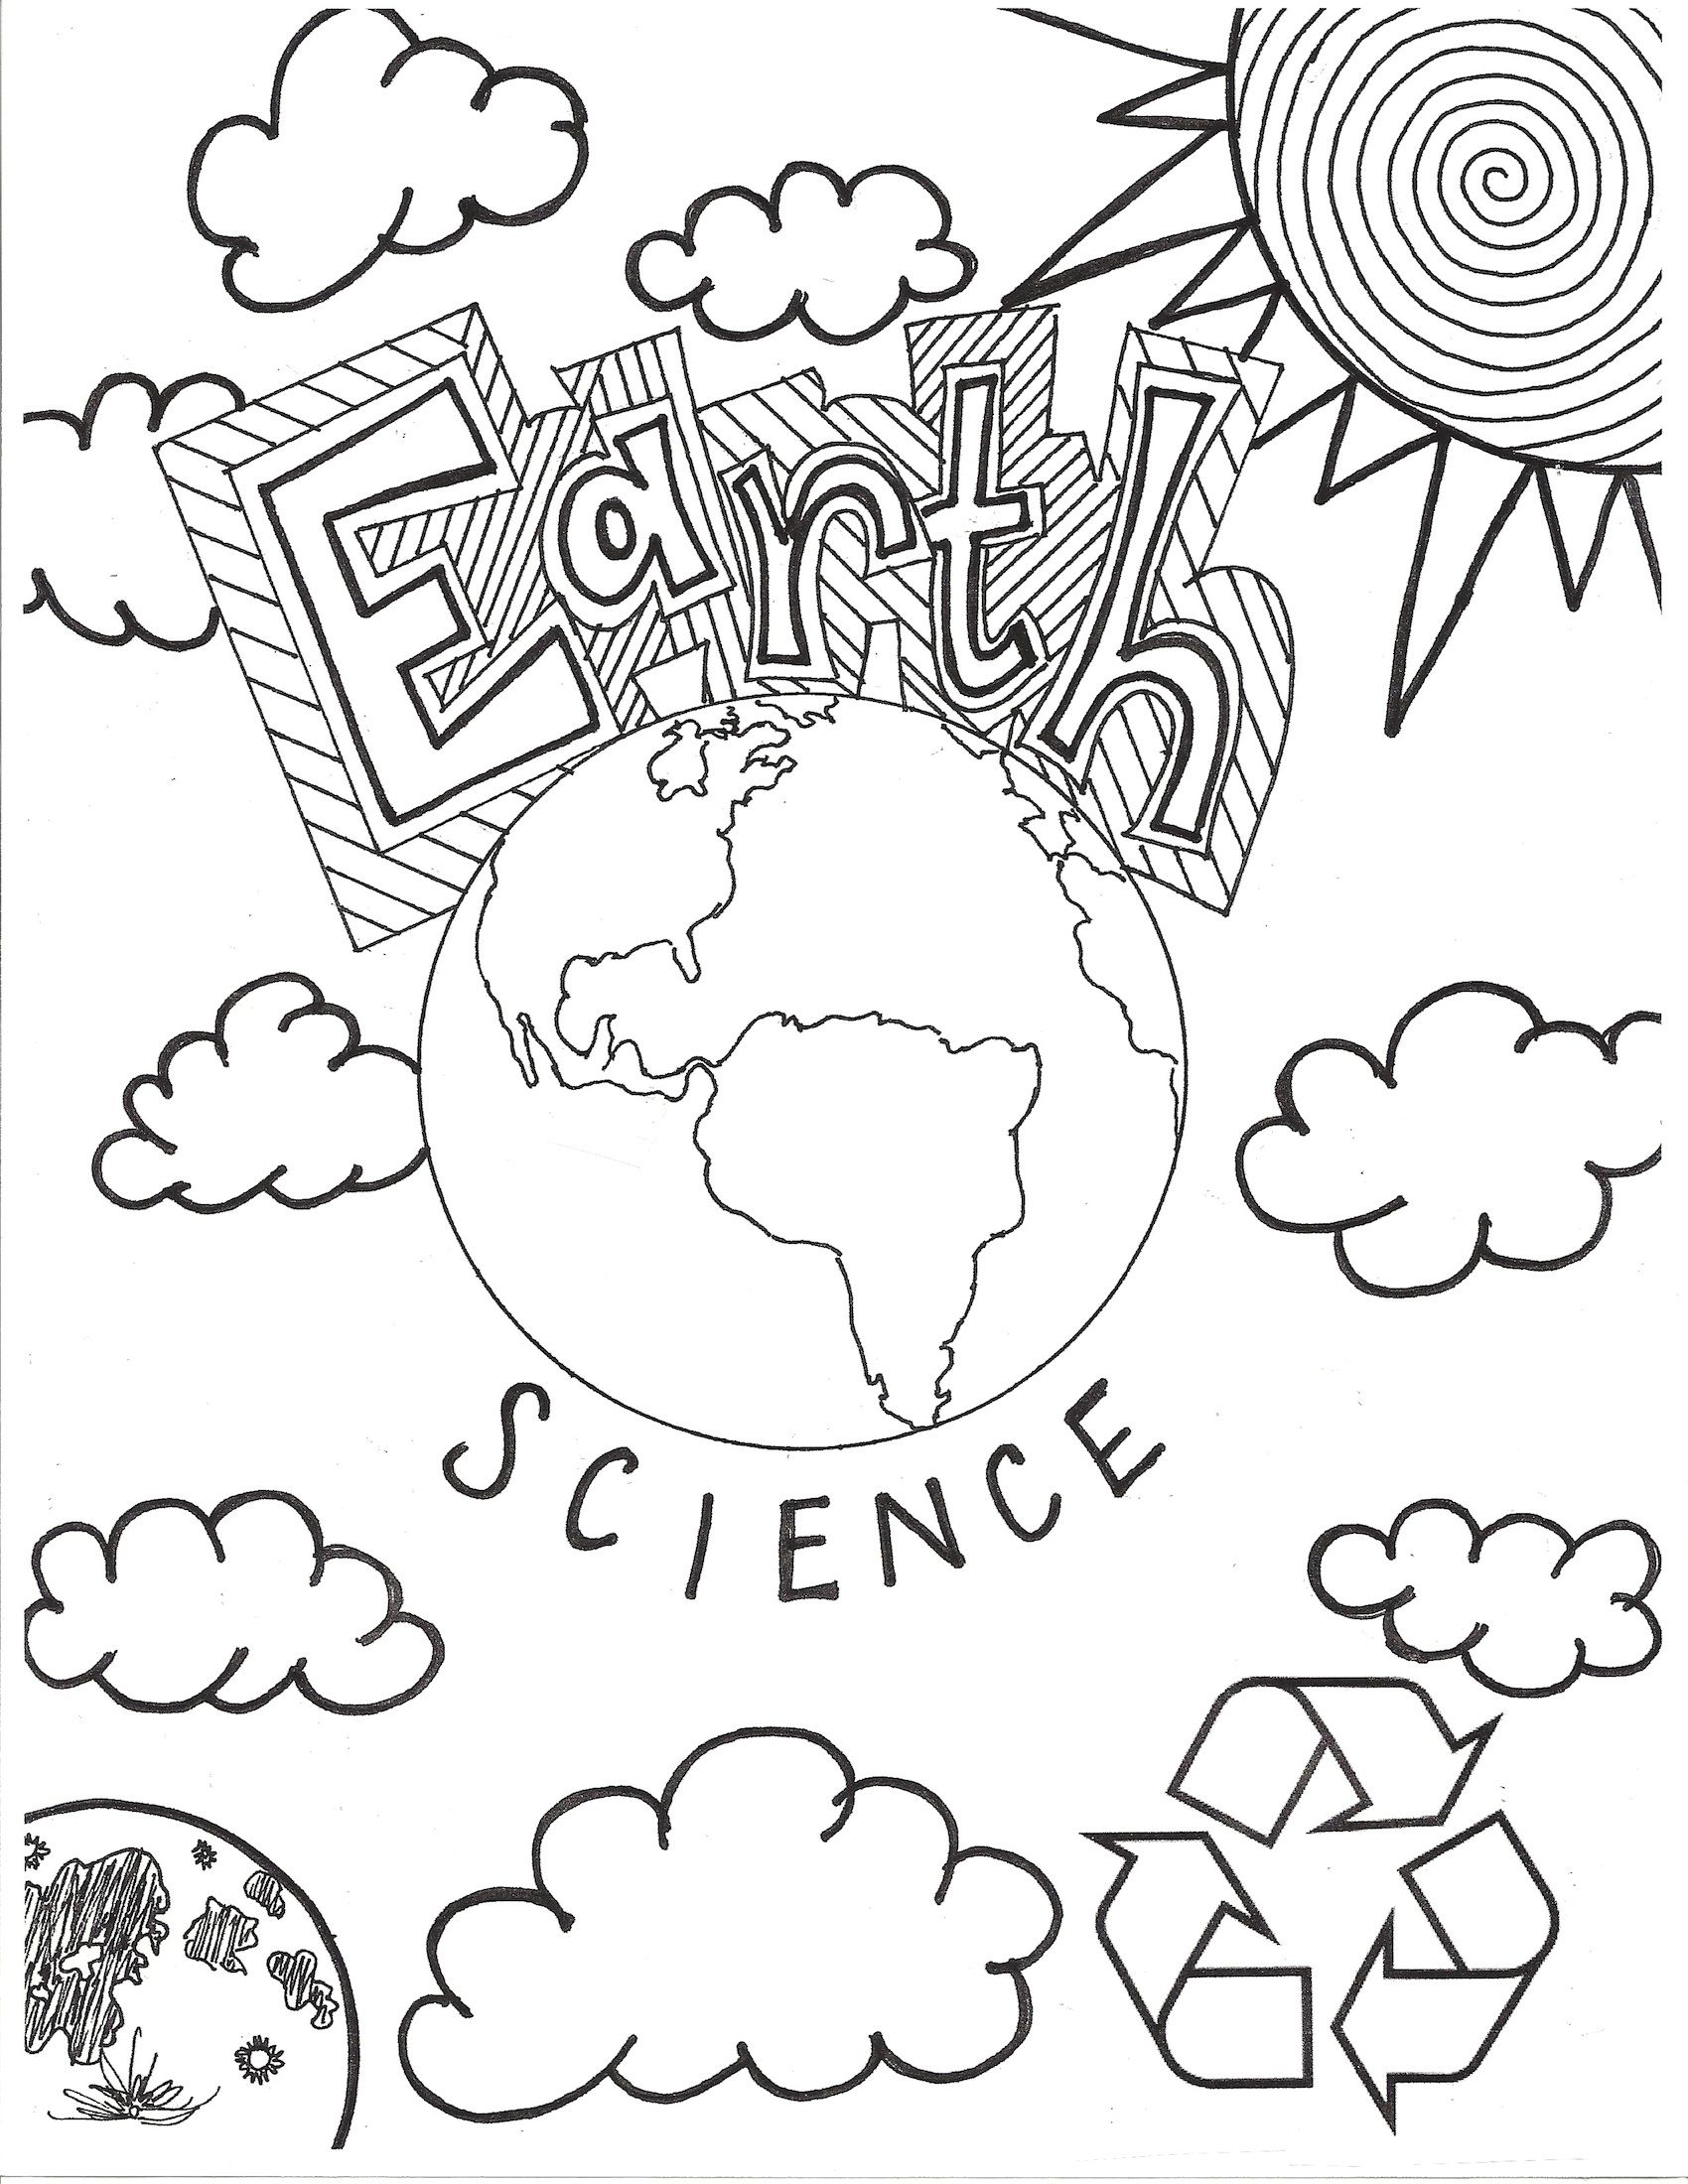 Uncategorized Science Coloring Page earth science coloring page cover middle school teaching school